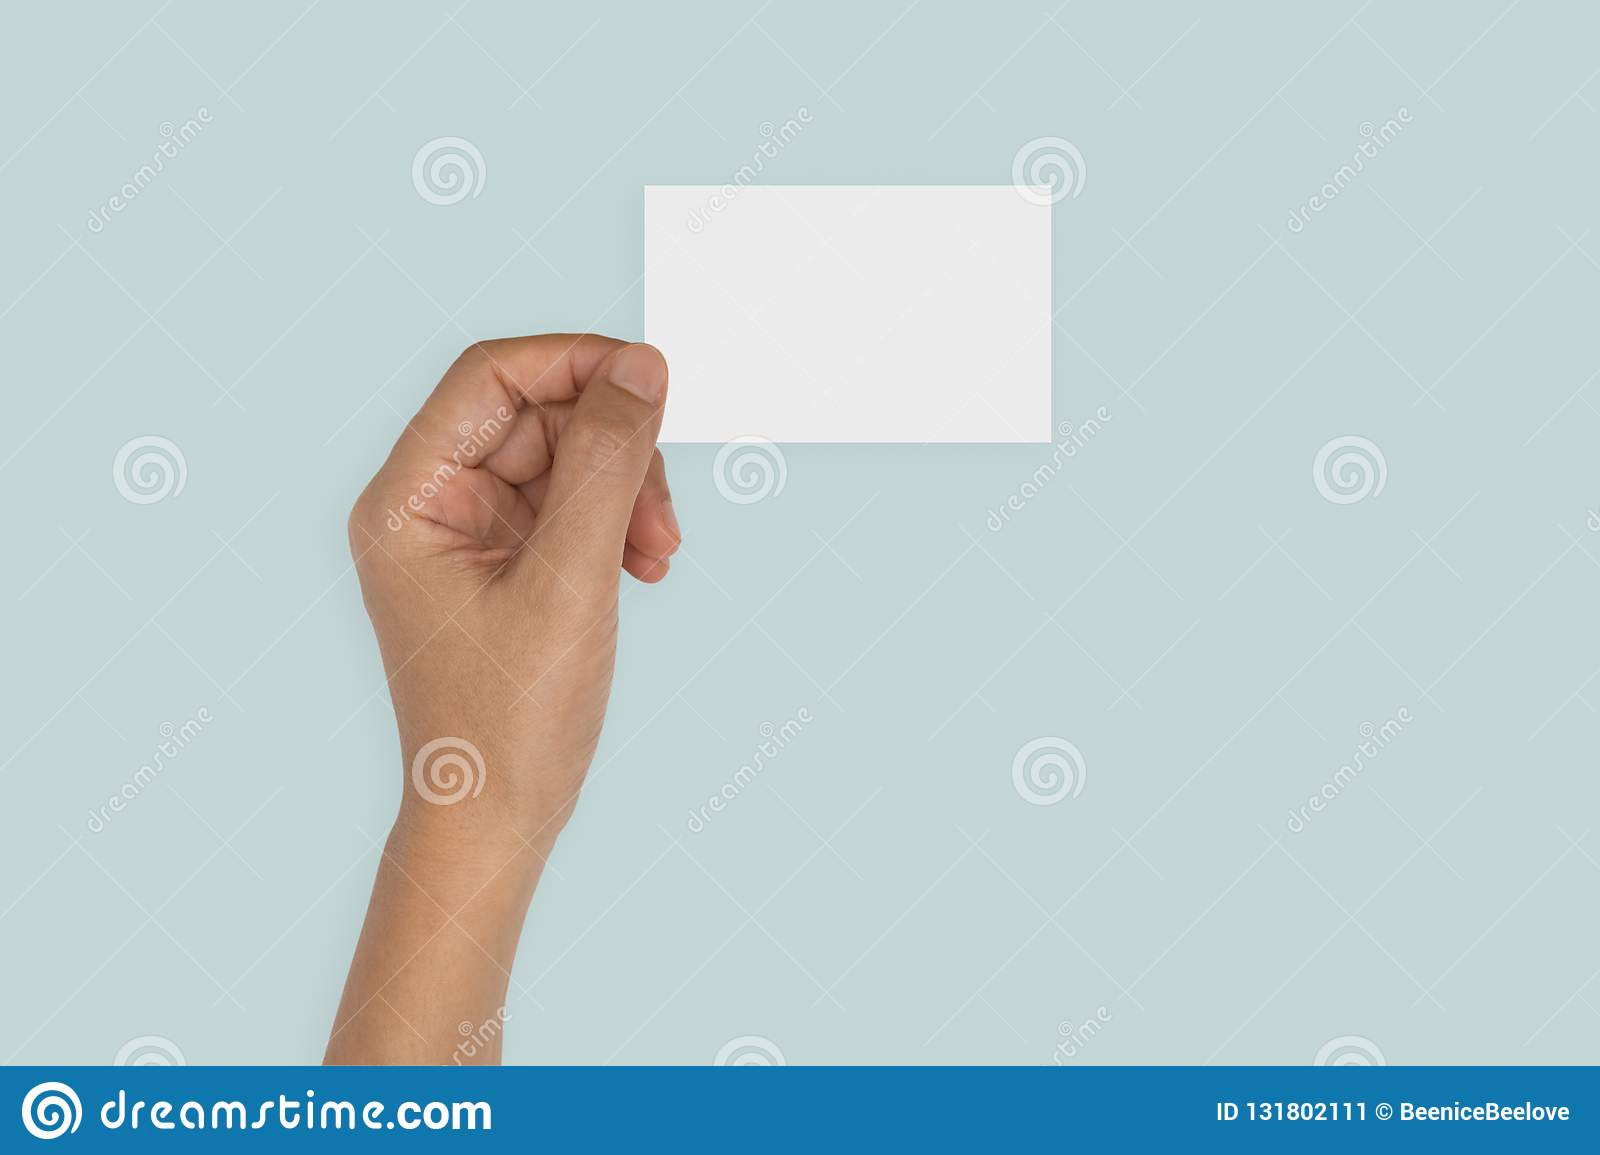 Hand holding blank card isolated on blue